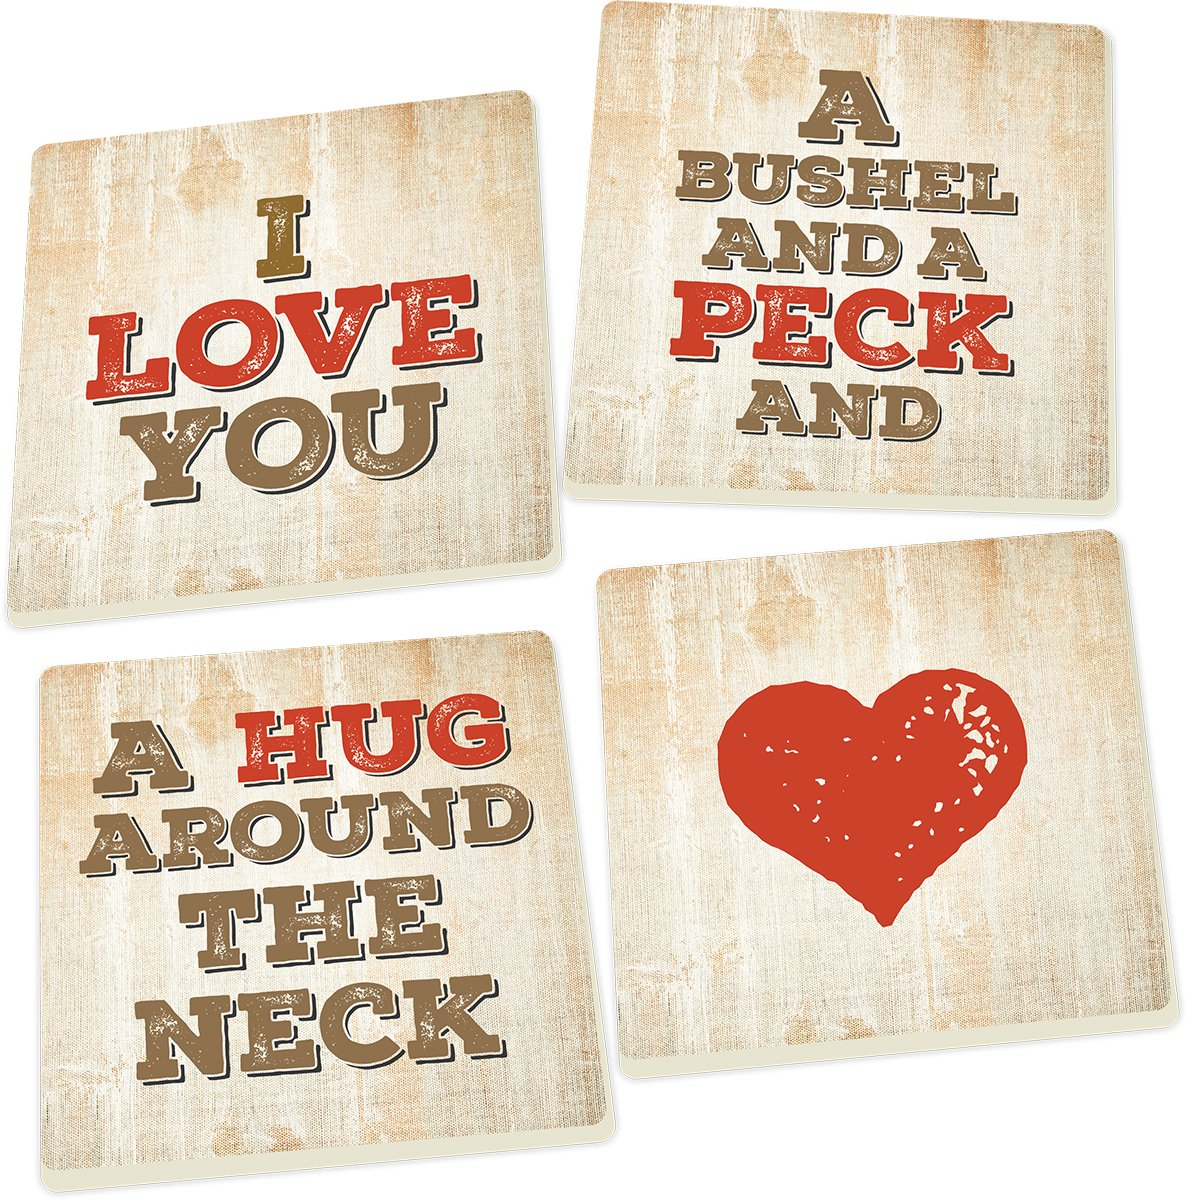 I Love You a Bushel and a Peck 5 x 5 Super Absorbent Ceramic Coasters, Set of 4 by P Graham Dunn (Image #1)